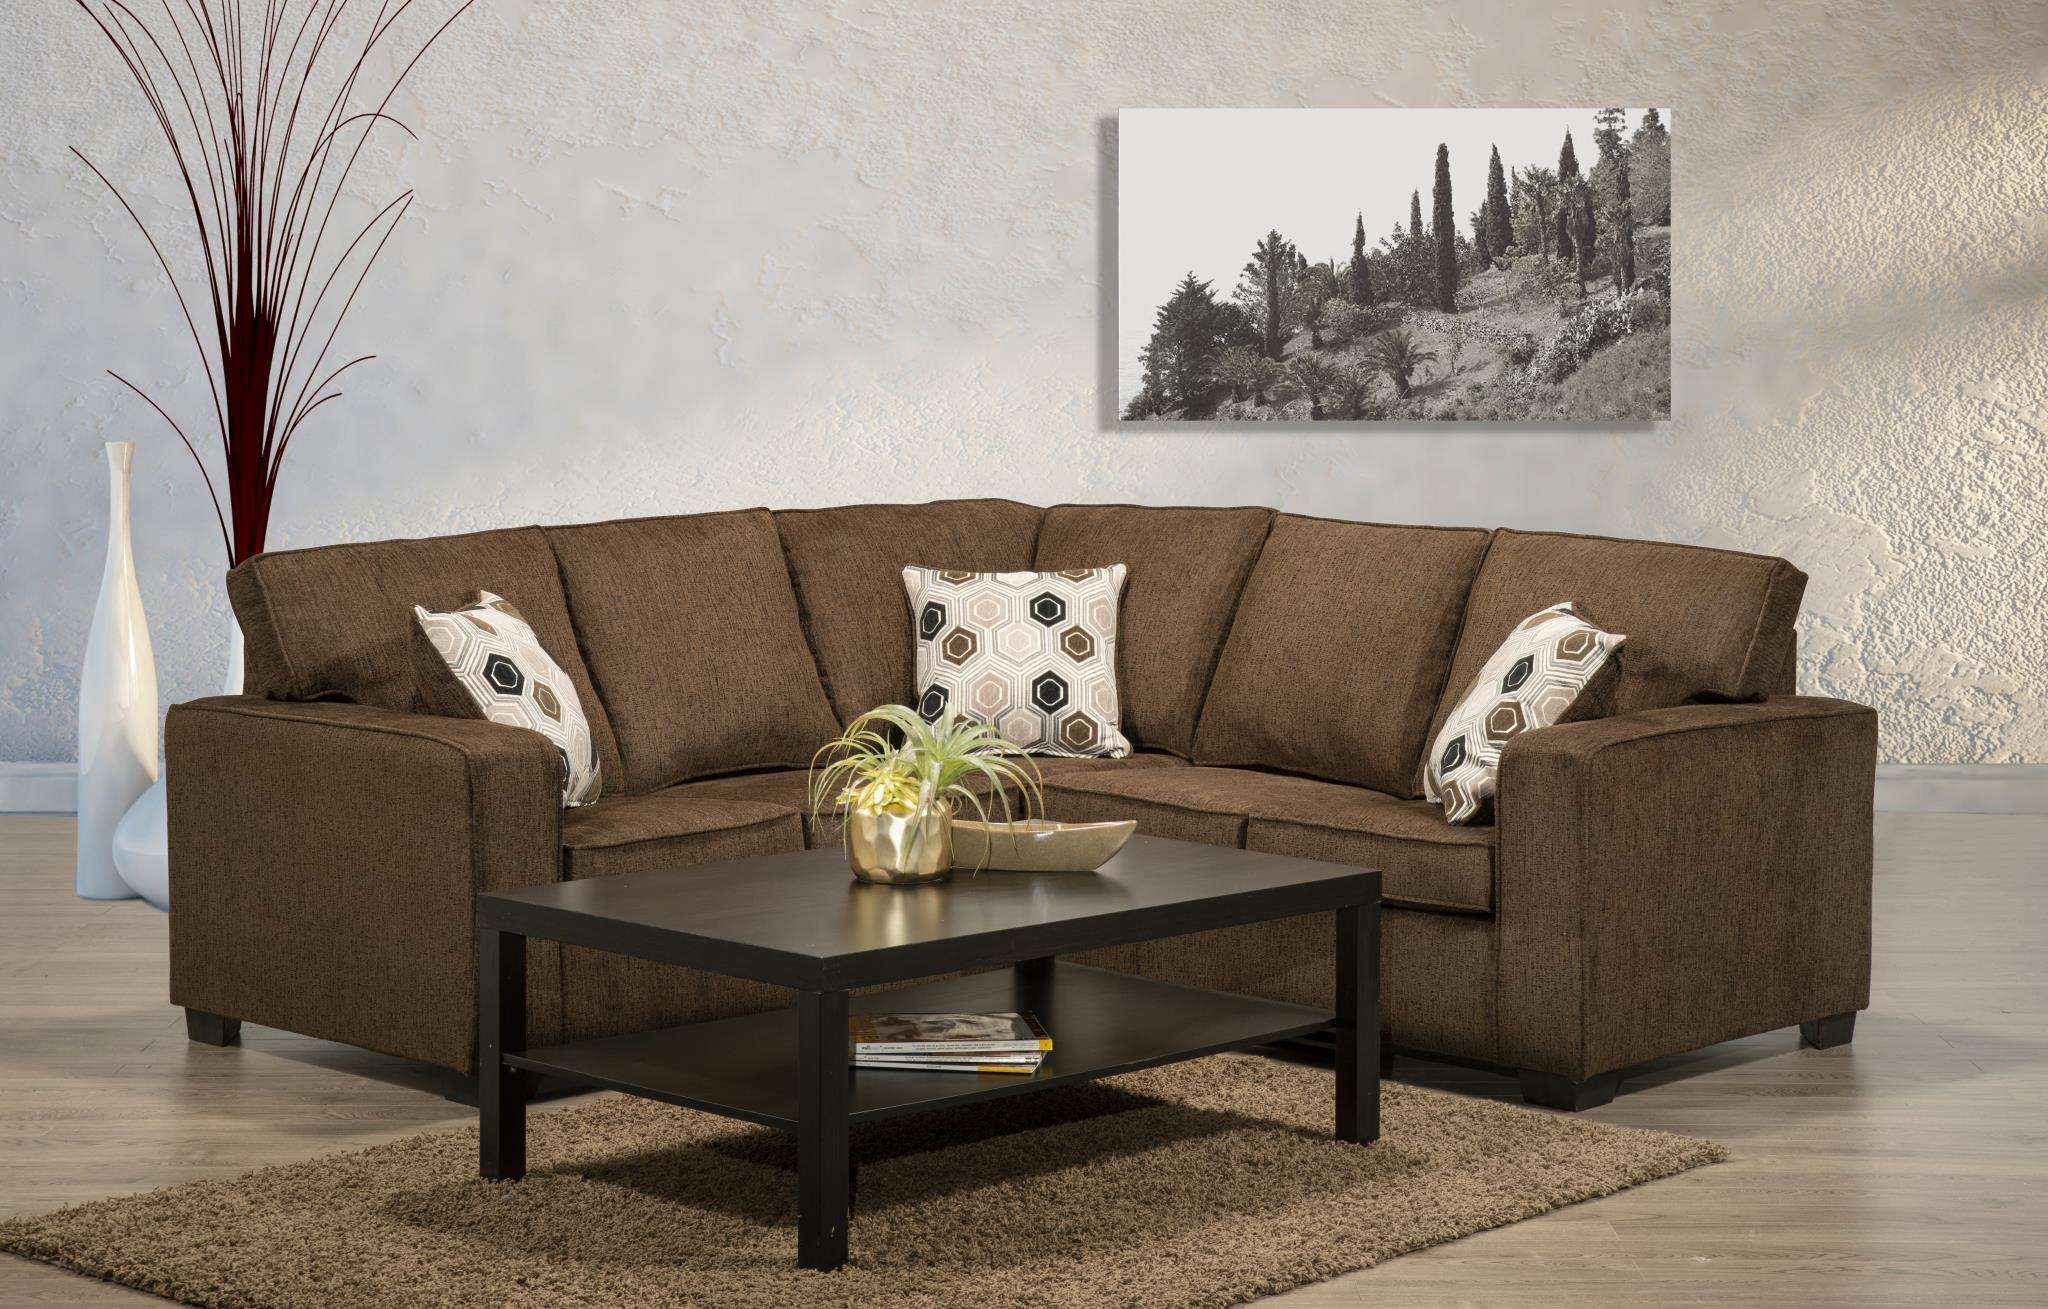 6405 Chenille Brown Fabric Sectional Made In Canada Affordable Mattress And Furniture